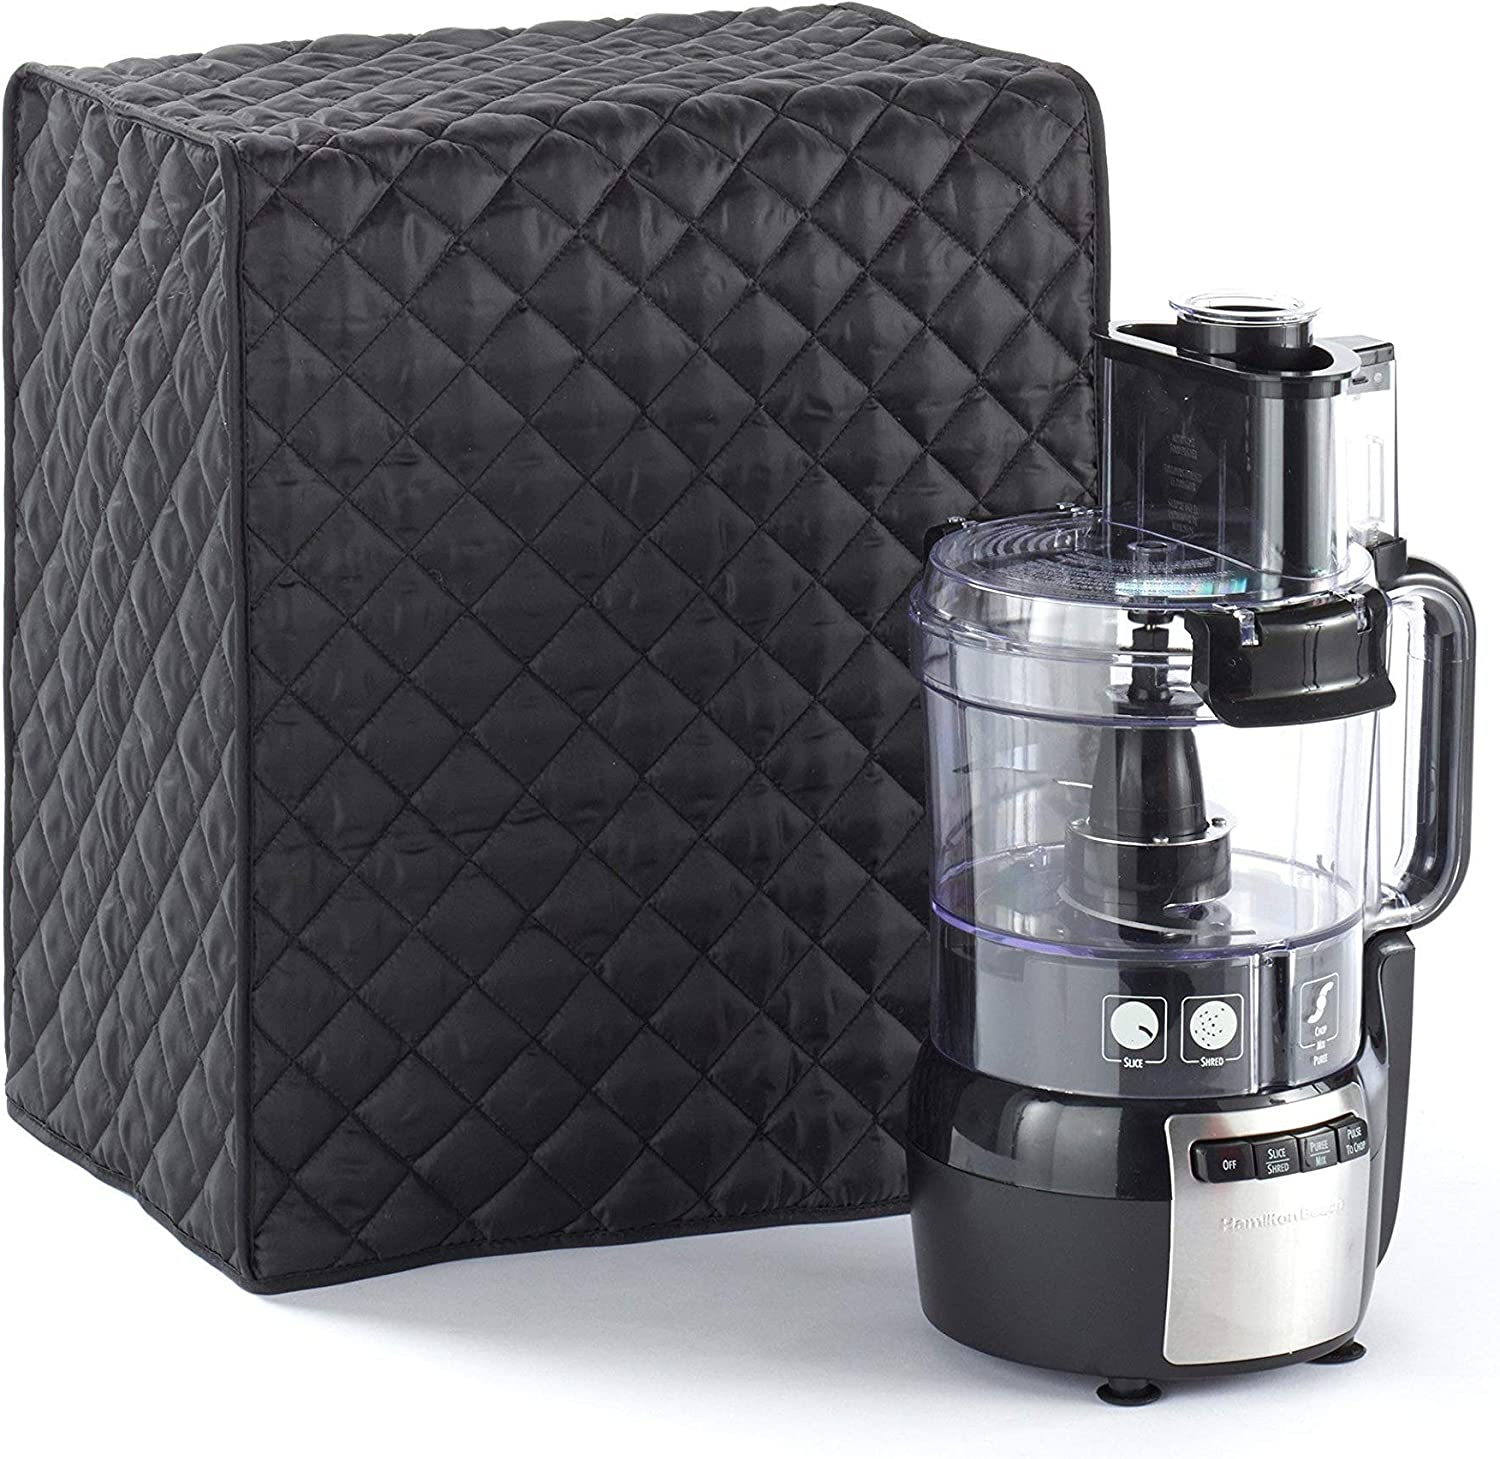 Stain Resistant Covermates Keepsakes Dust Protection Washable Blender Cover Appliance Cover Black